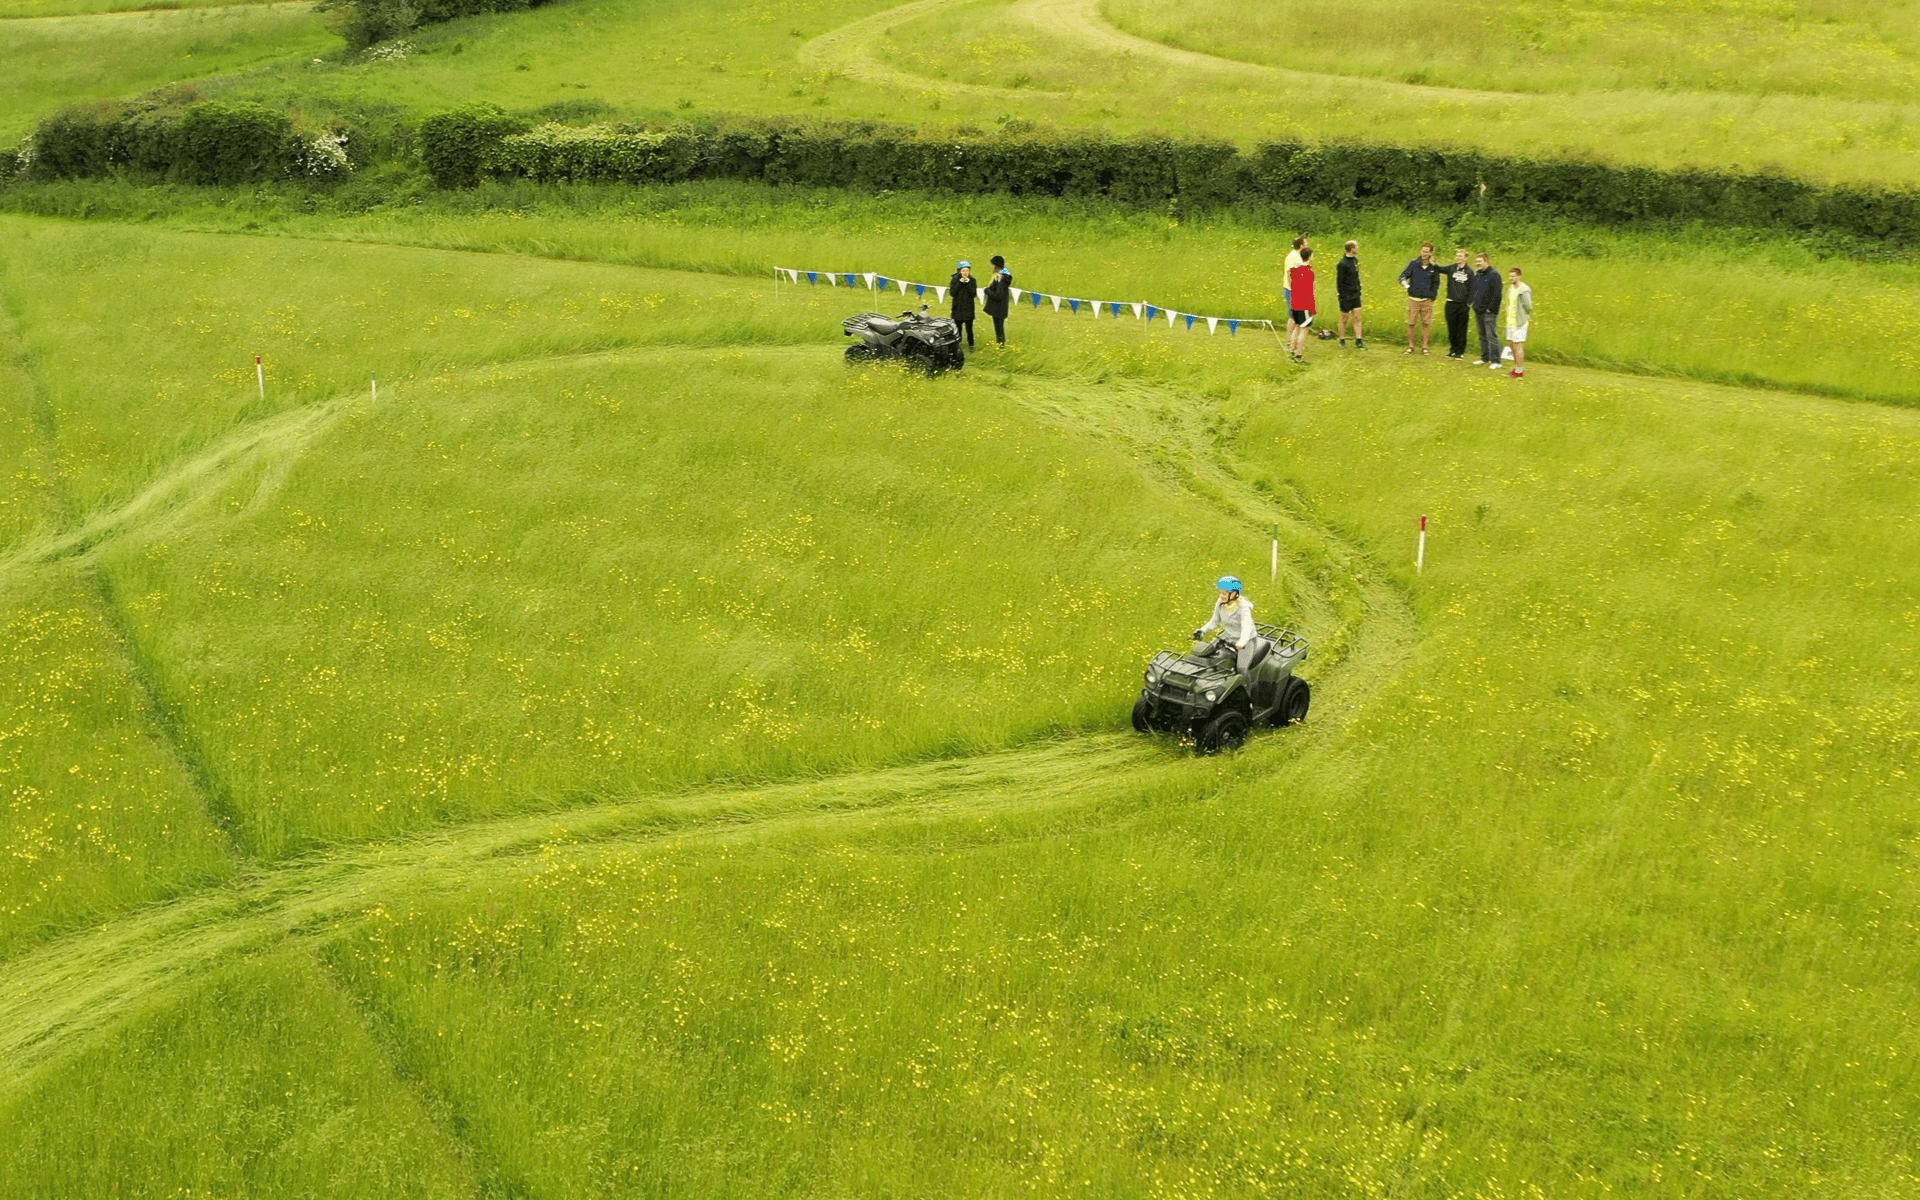 """DJI Mavic 2 Pro"" aerial drone photo of ""Hydrock"" employee on a quadbike in a field at corporate event in almondsbury bristol"